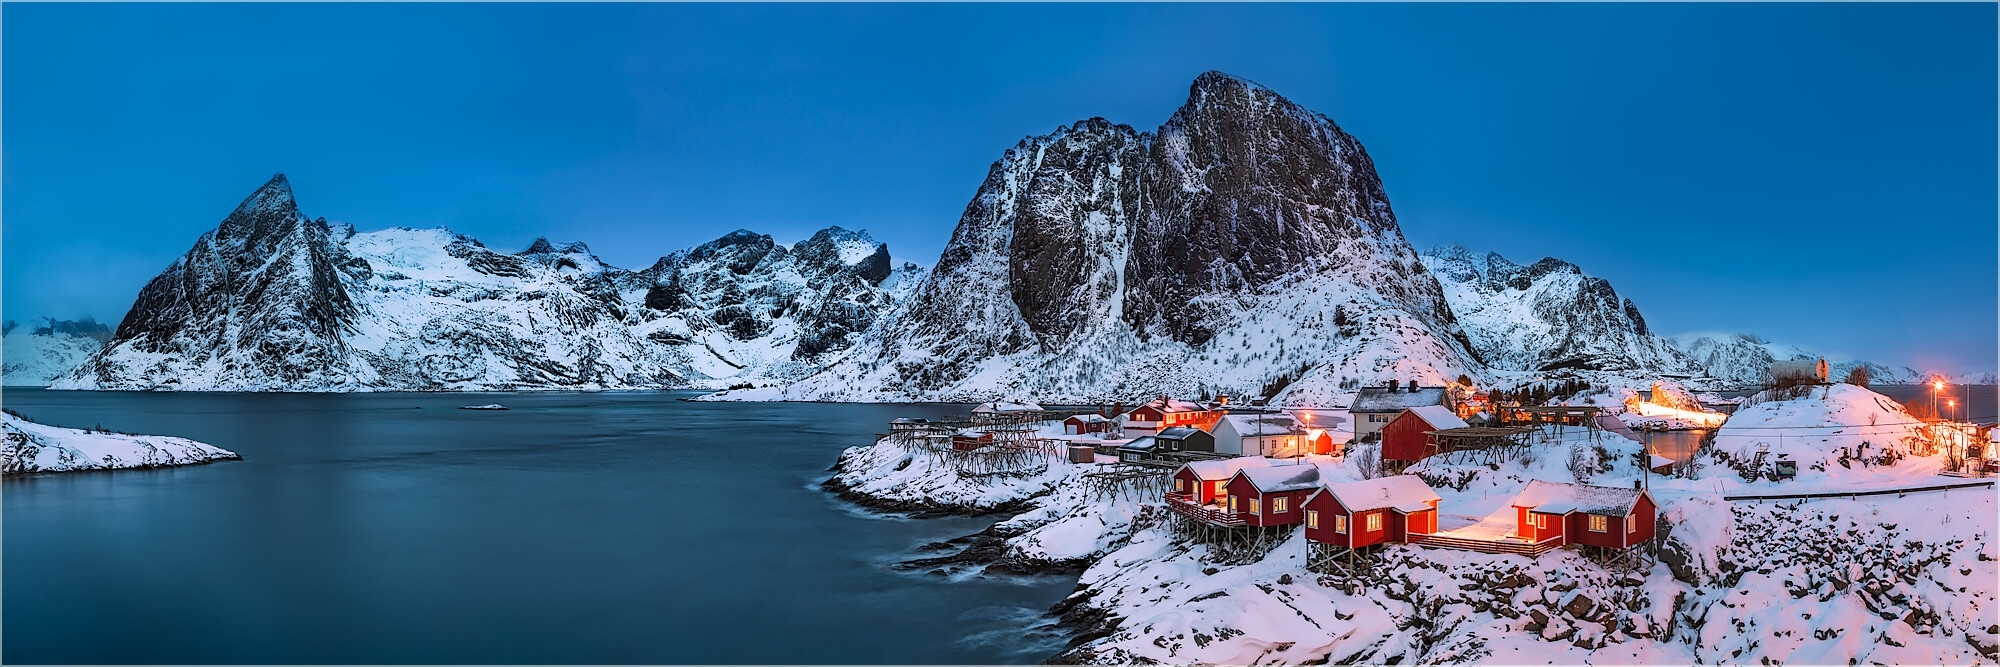 Panoramabild Polartag in Hamnøy Lofoten Norwegen